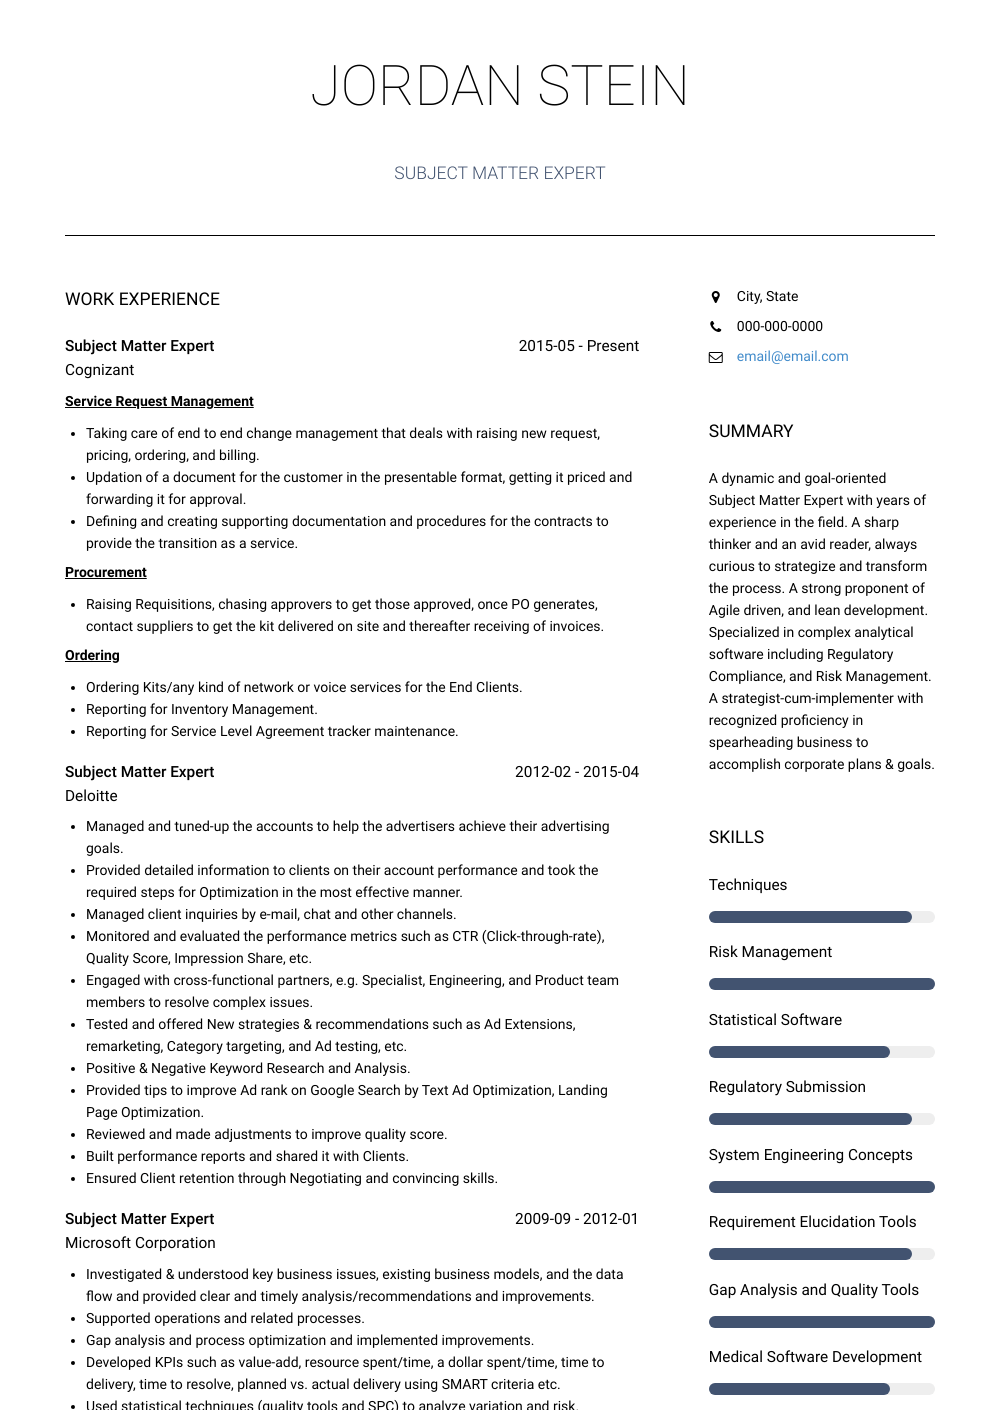 Subject Matter Expert - Resume Samples and Templates | VisualCV